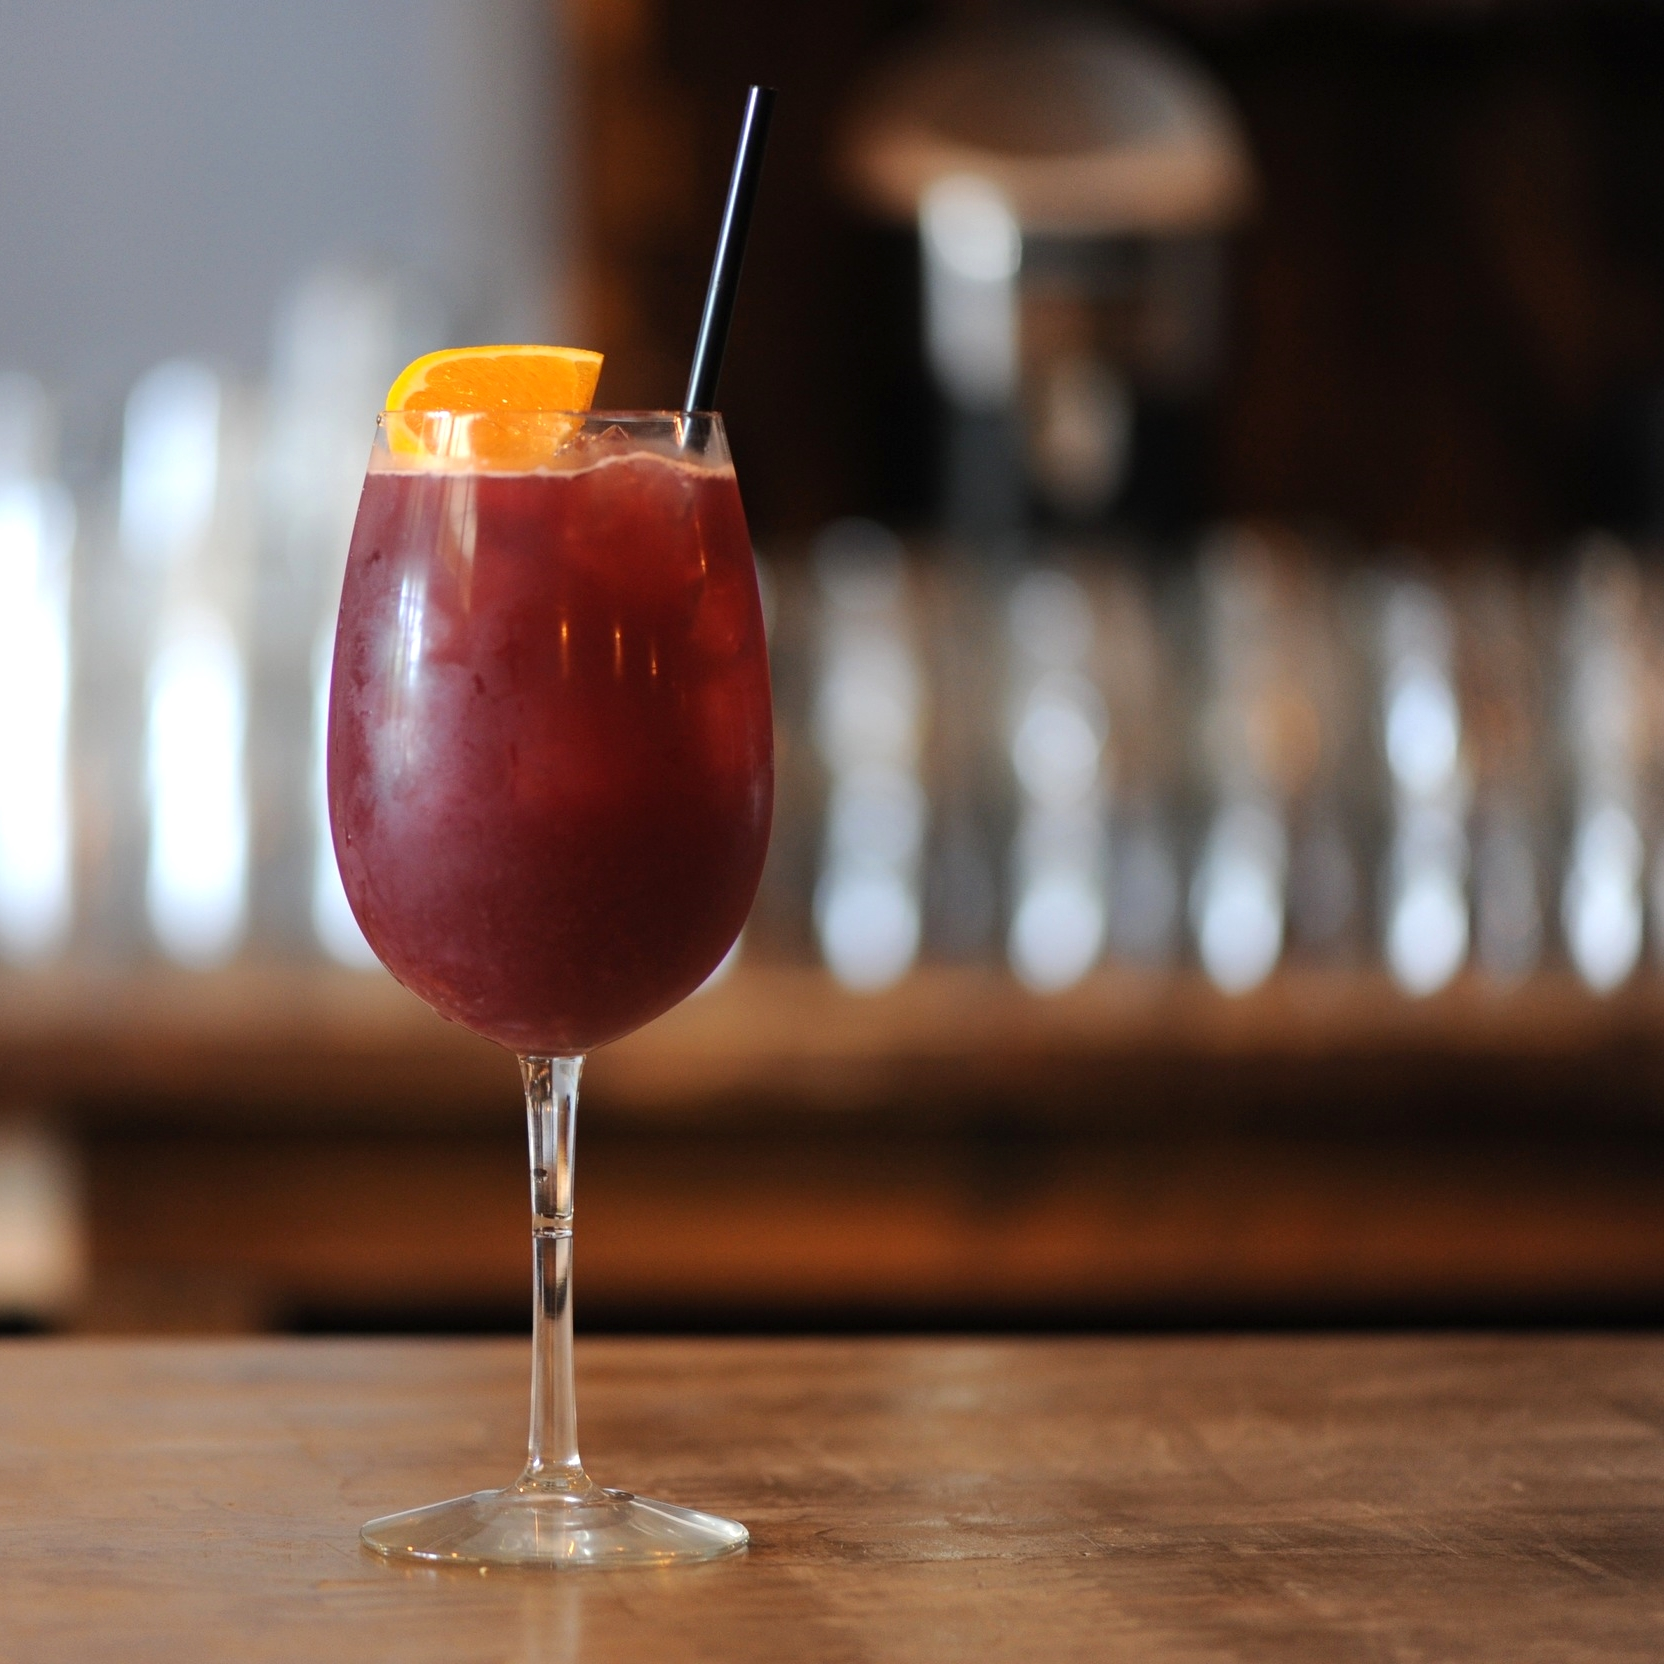 the-cocktail-experiment-syrups-grenadine-andes-punch.jpg